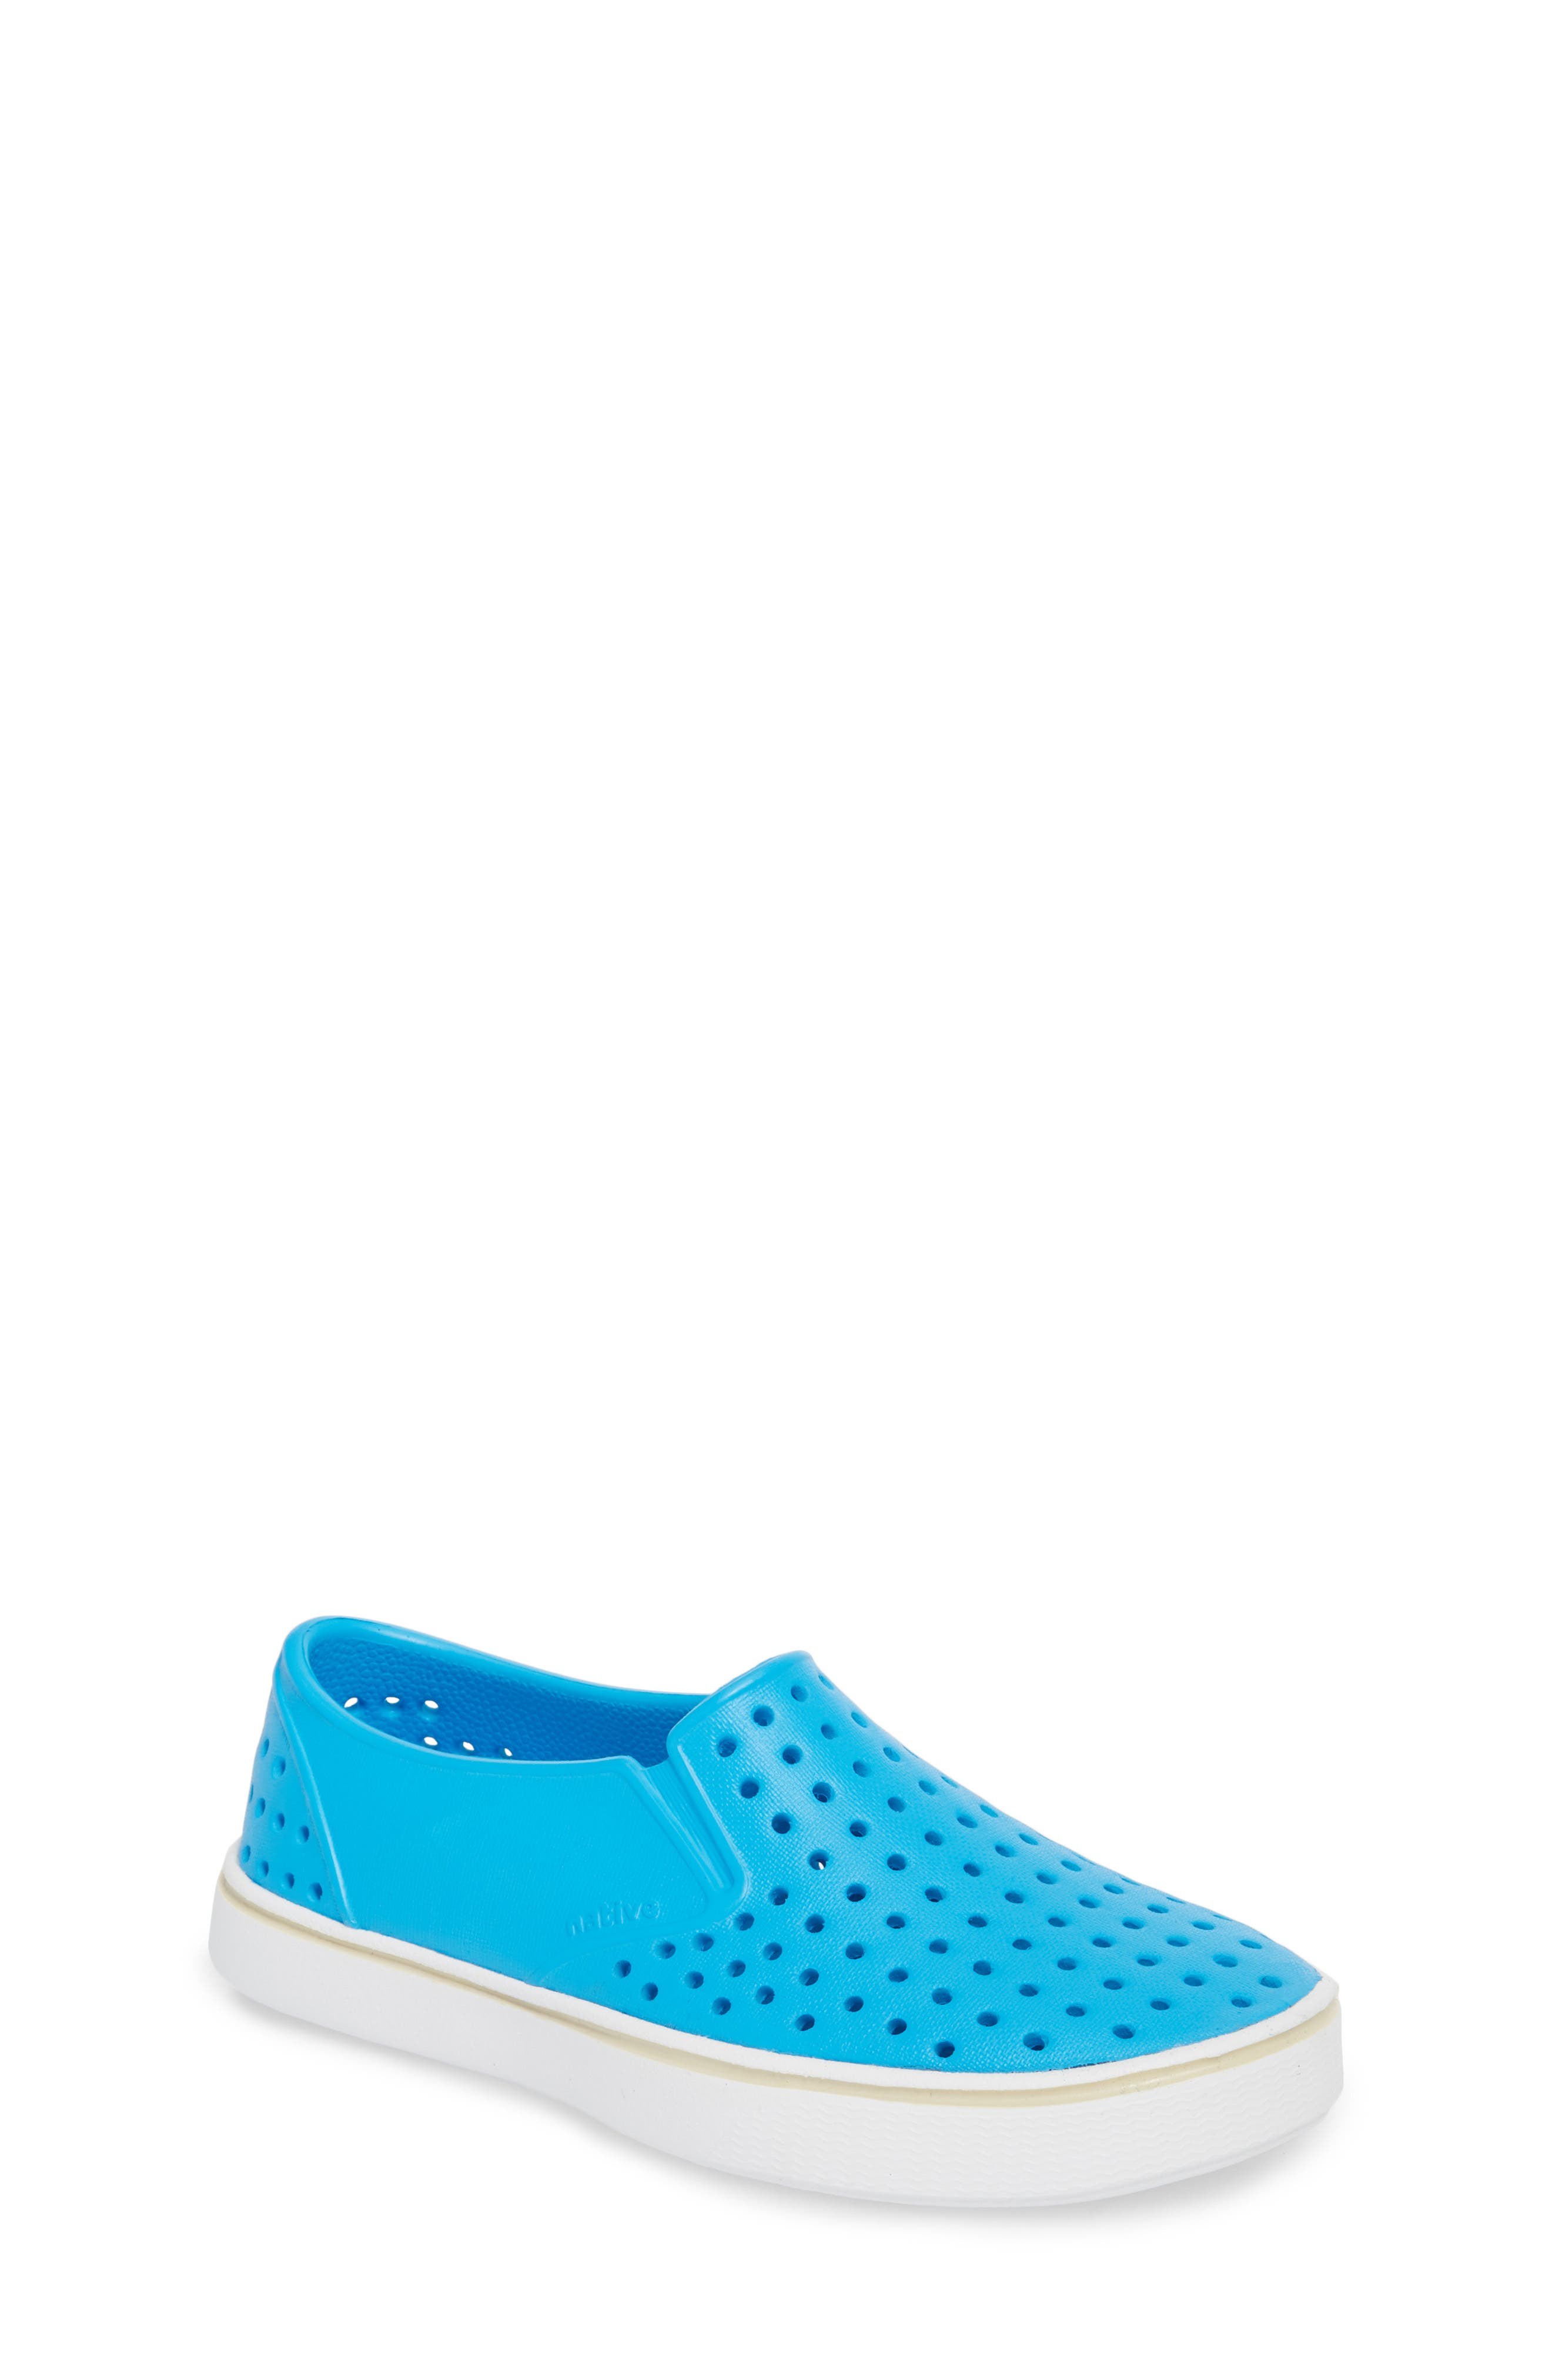 Miles Water Friendly Slip-On Sneaker,                         Main,                         color, Wave Blue/ Shell White